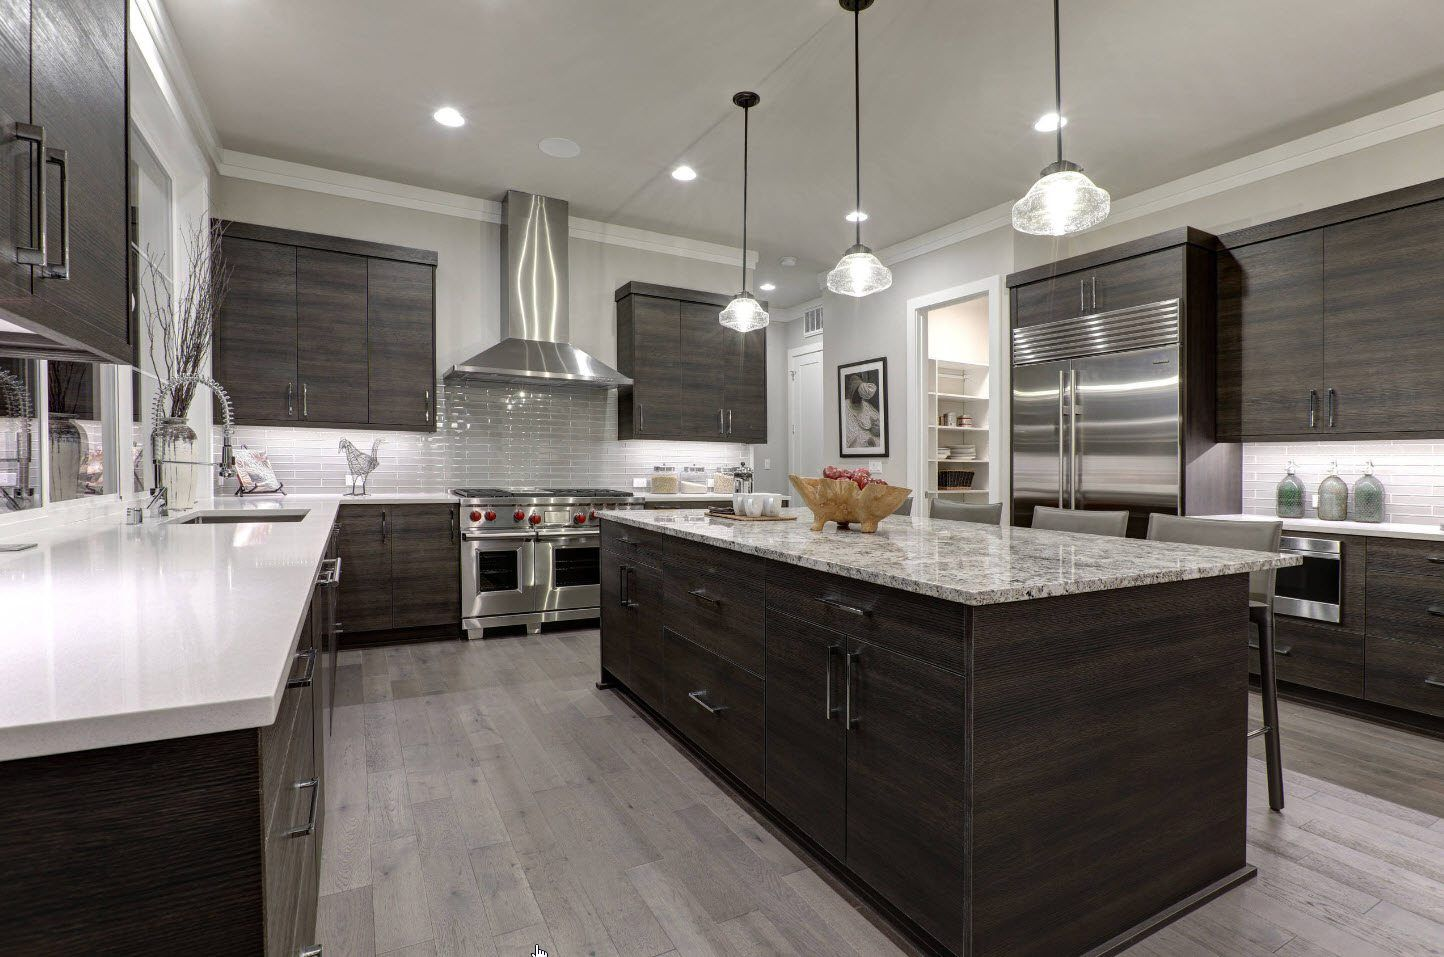 Black wooden kitchen island in the large room with dark furniture facades